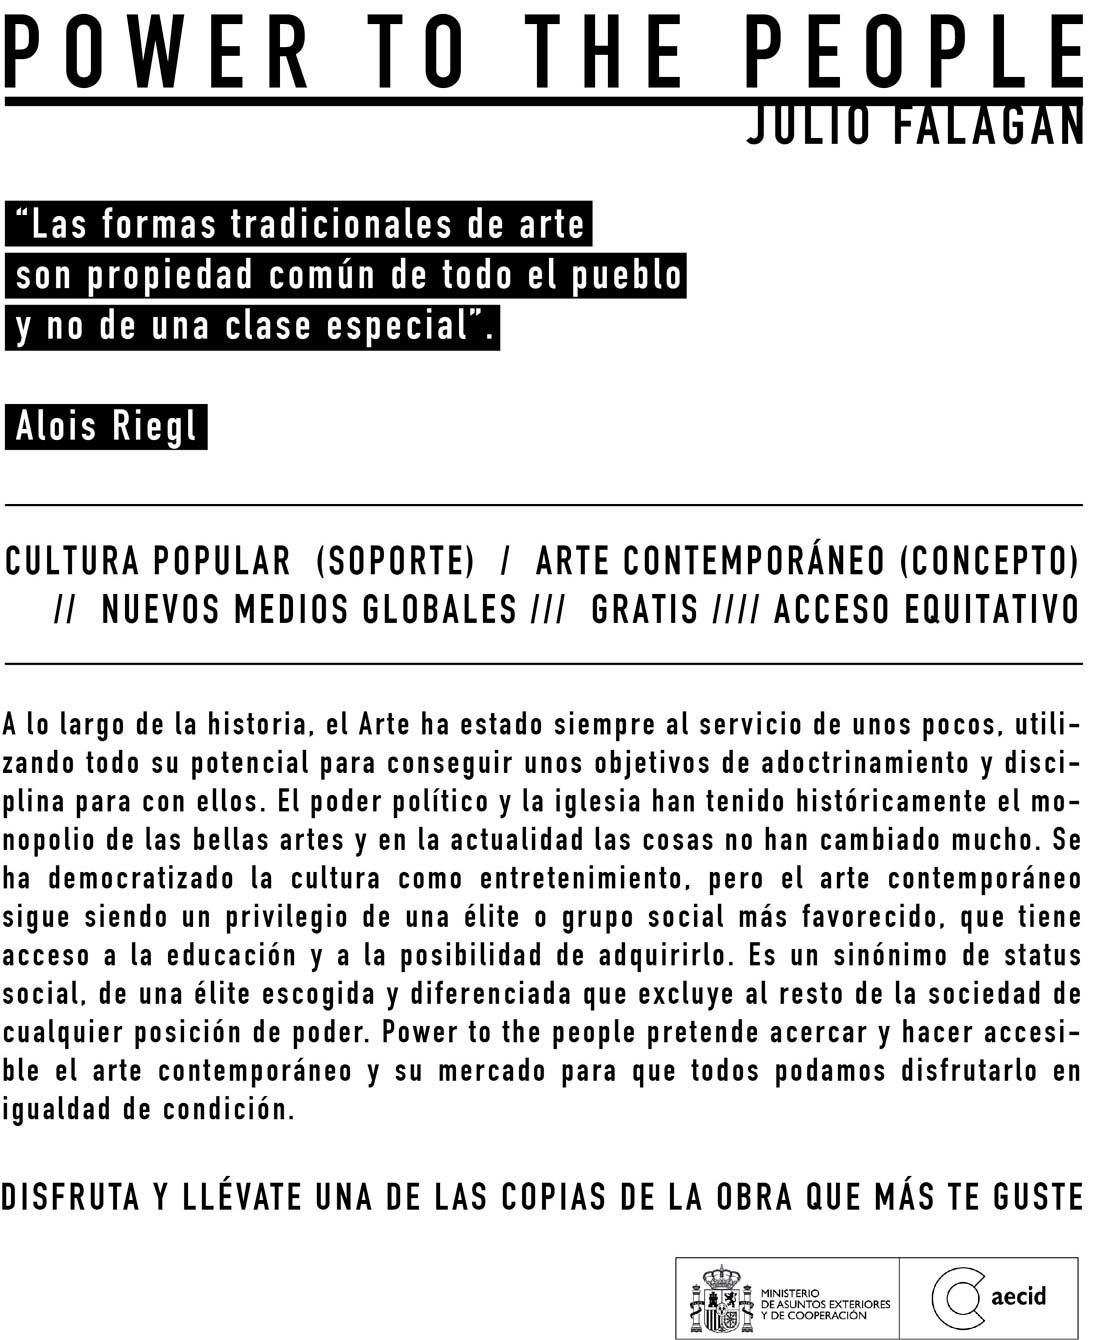 power-to-the-people-explicación-julio-falagan